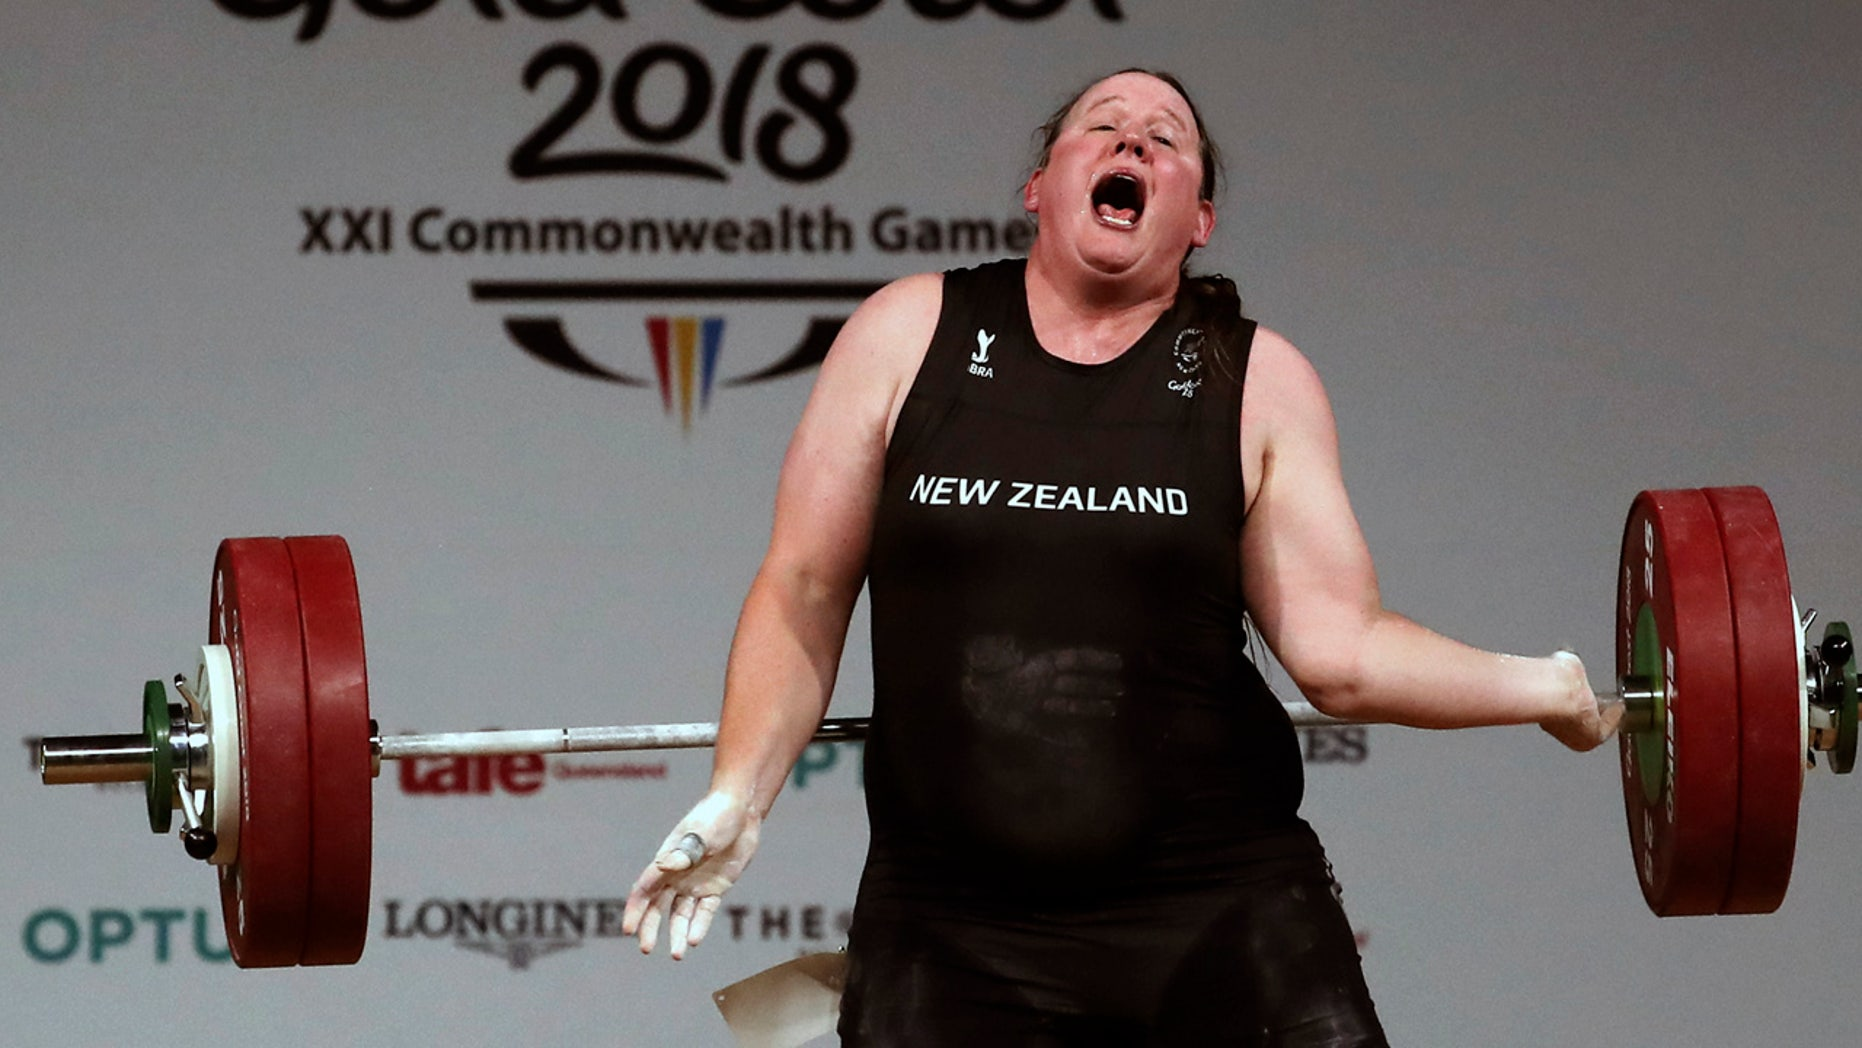 New Zealand weightlifter Laurel Hubbard withdrew from the Commonwealth Games' over-90kg weightlifting competition after suffering this injury.